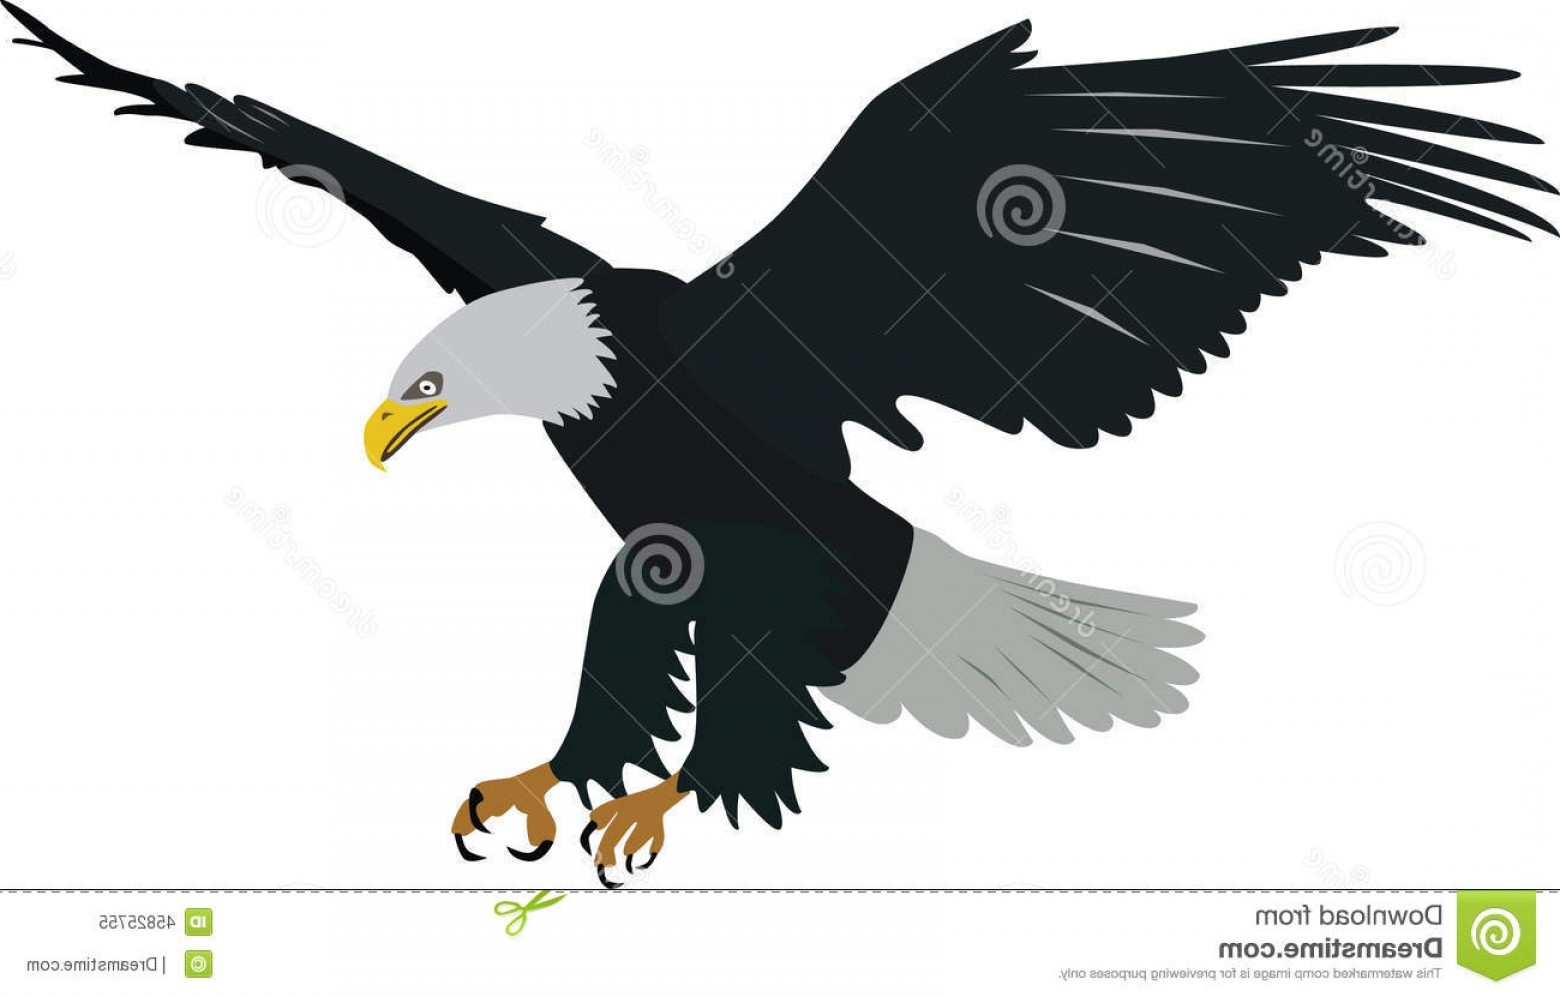 Patriotic Bald Eagle Vector: Stock Illustration Bald Eagle Vector Flying Preying Image